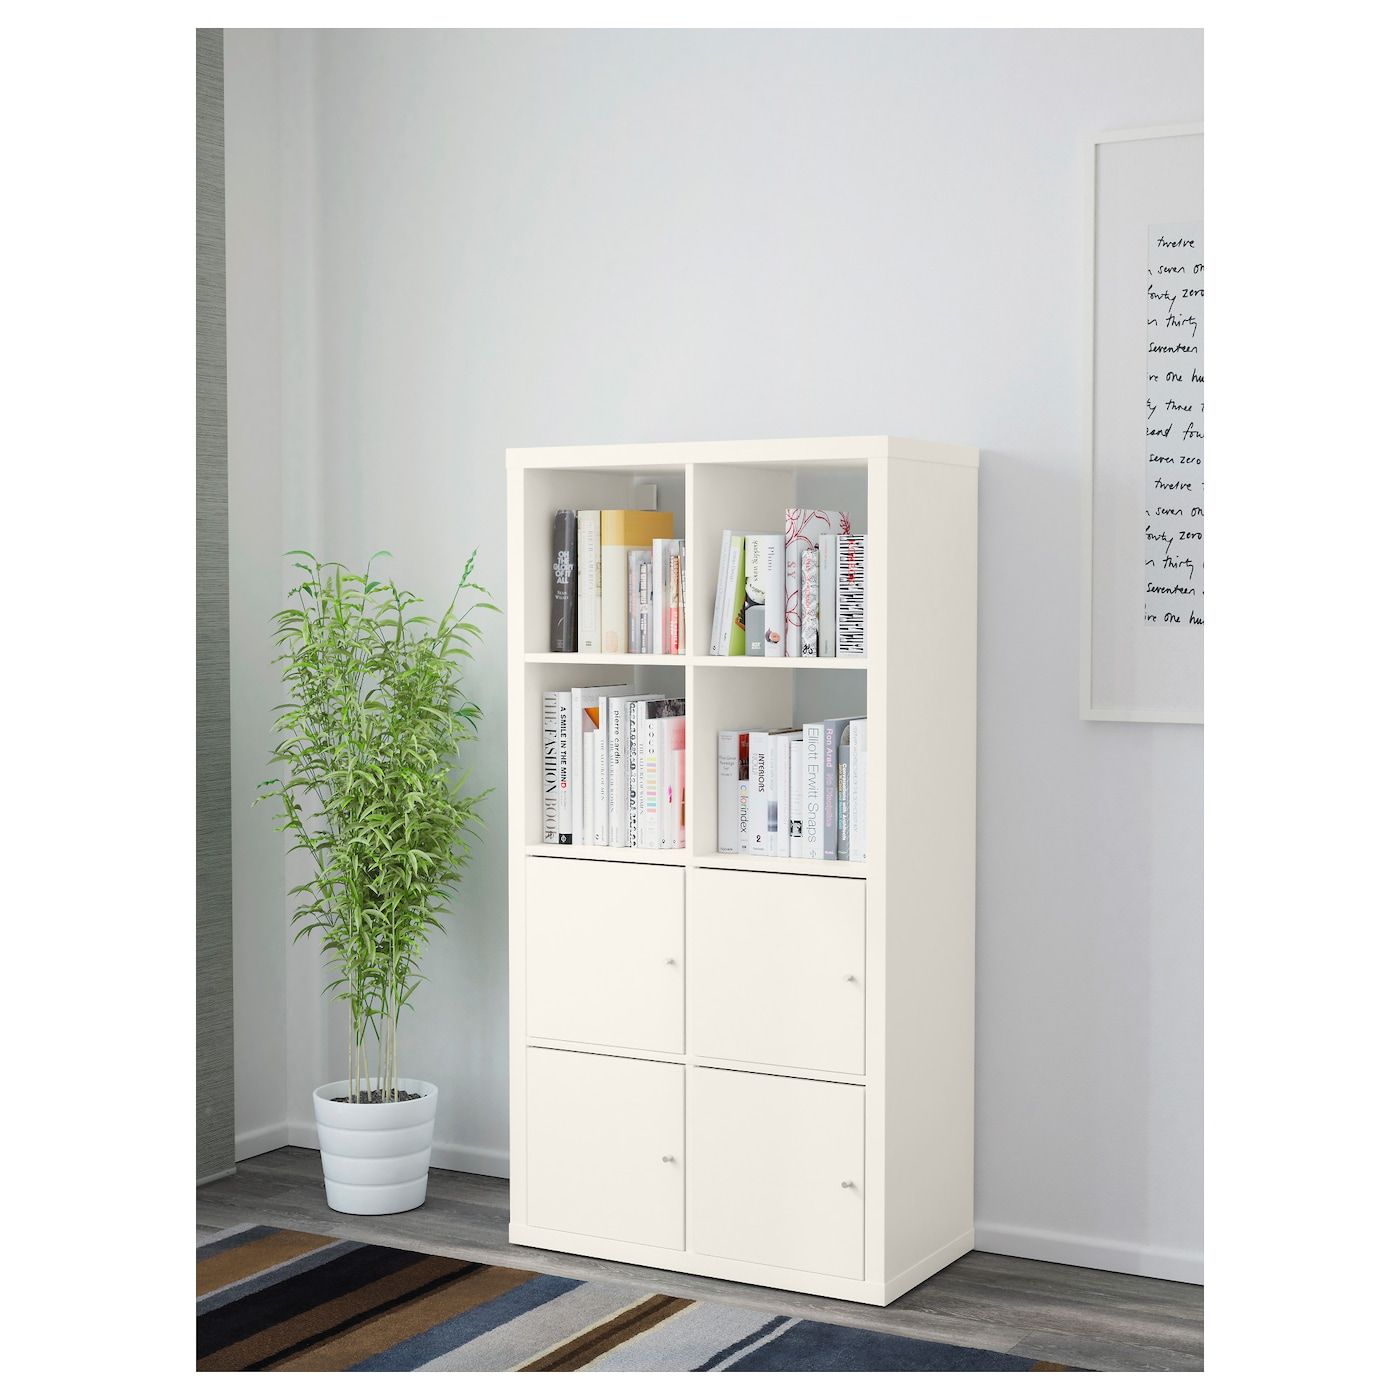 kallax shelving unit with doors white 77 x 147 cm ikea. Black Bedroom Furniture Sets. Home Design Ideas